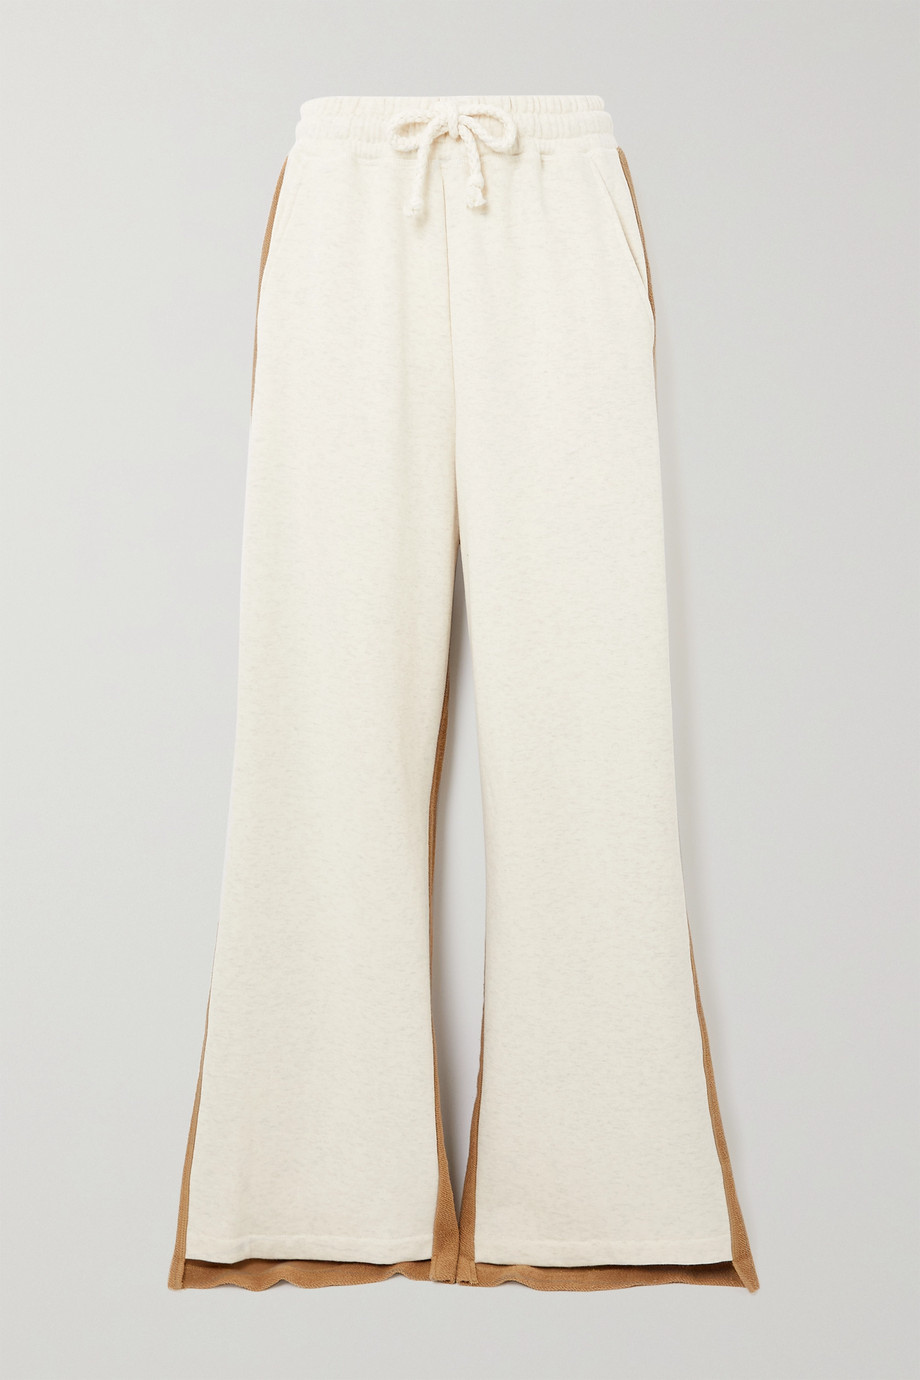 JW ANDERSON Paneled cotton-terry and jersey track pants